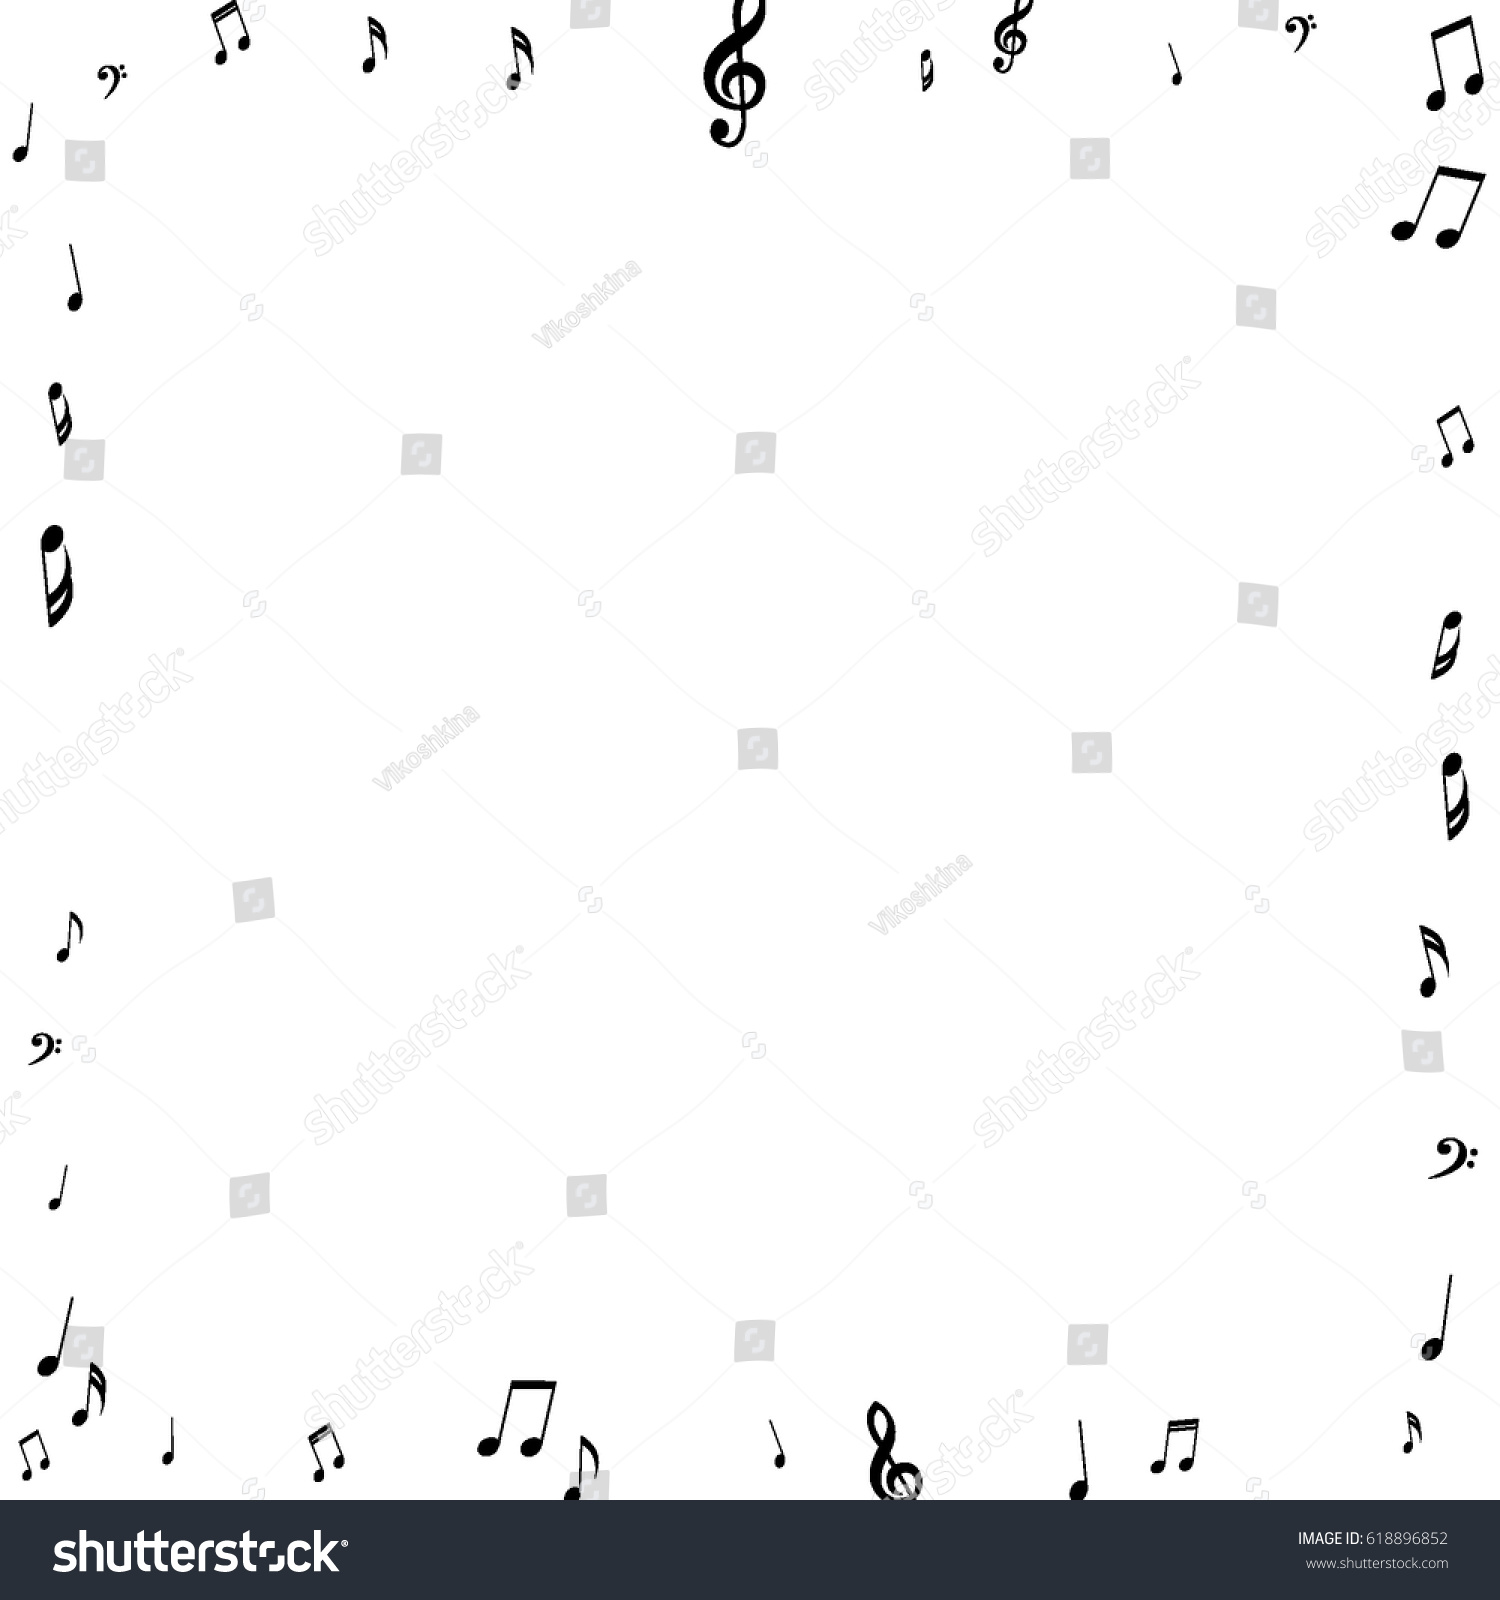 Square Frame Music Notes Treble Bass Stock Vector 618896852 ...